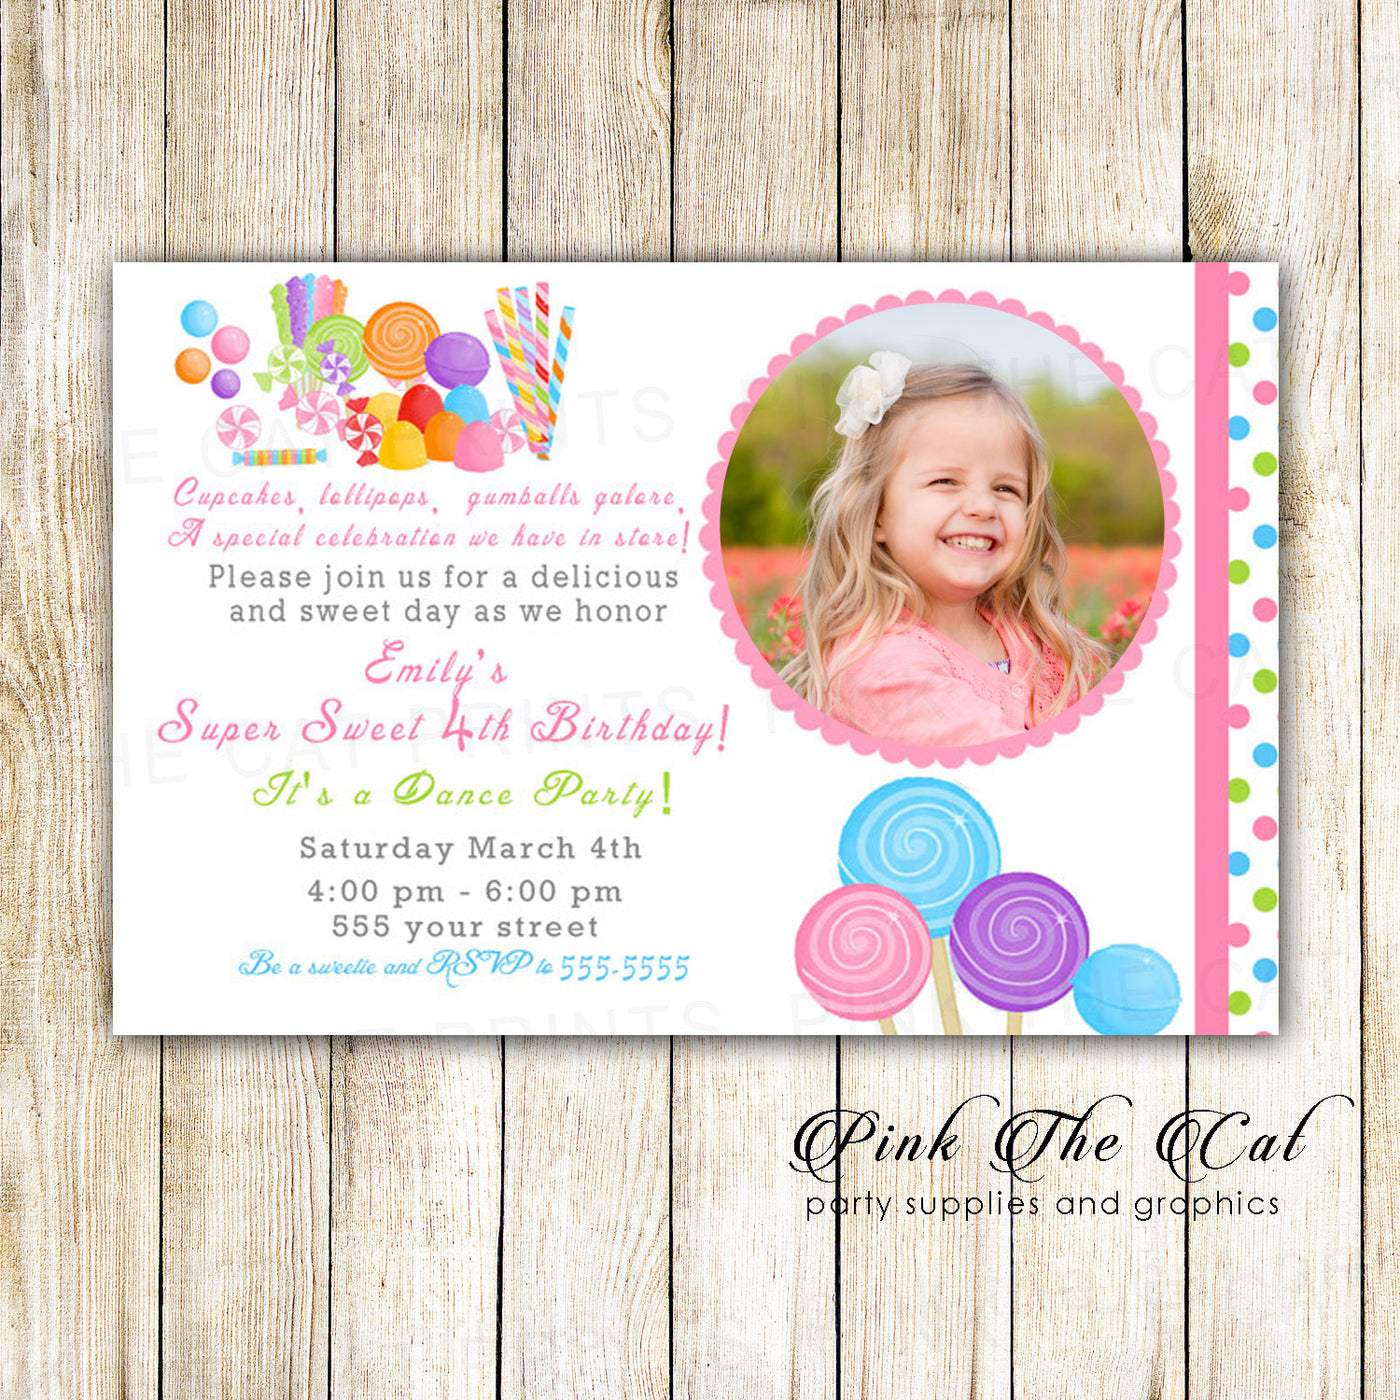 Candy Birthday Invitation With Photo Candy Theme Birthday Party For Girls Invitation Printable Invitation Sweets Birthday Party Invitation